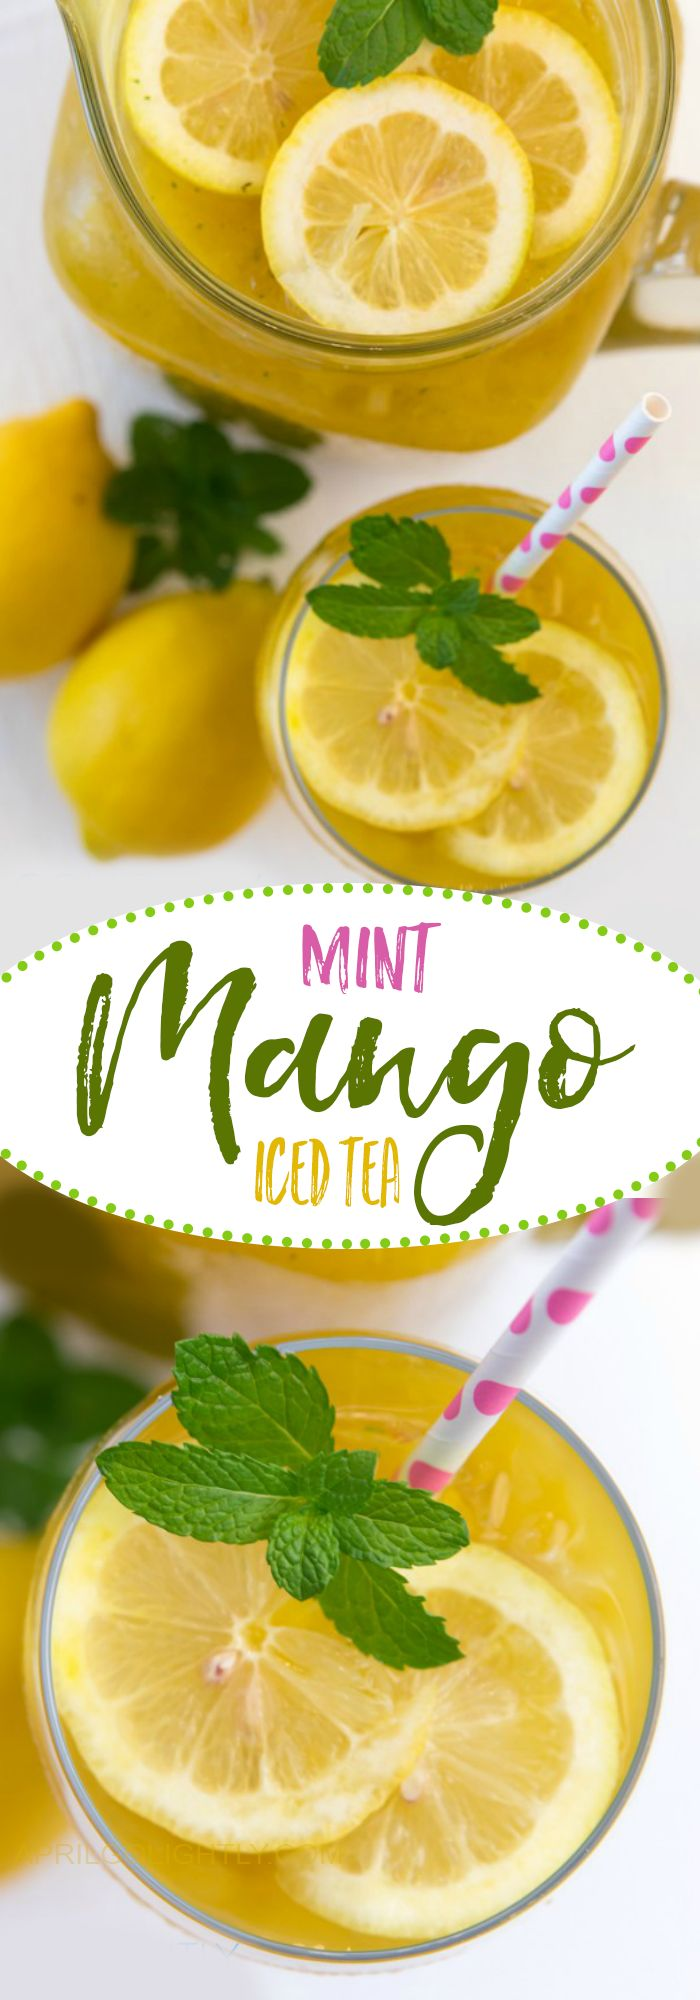 Mango Mint Iced Tea Recipe with Cold Brew Family Size Tea Bags, fresh mango and mint #CollectiveBias #shop #TEArifficPairs